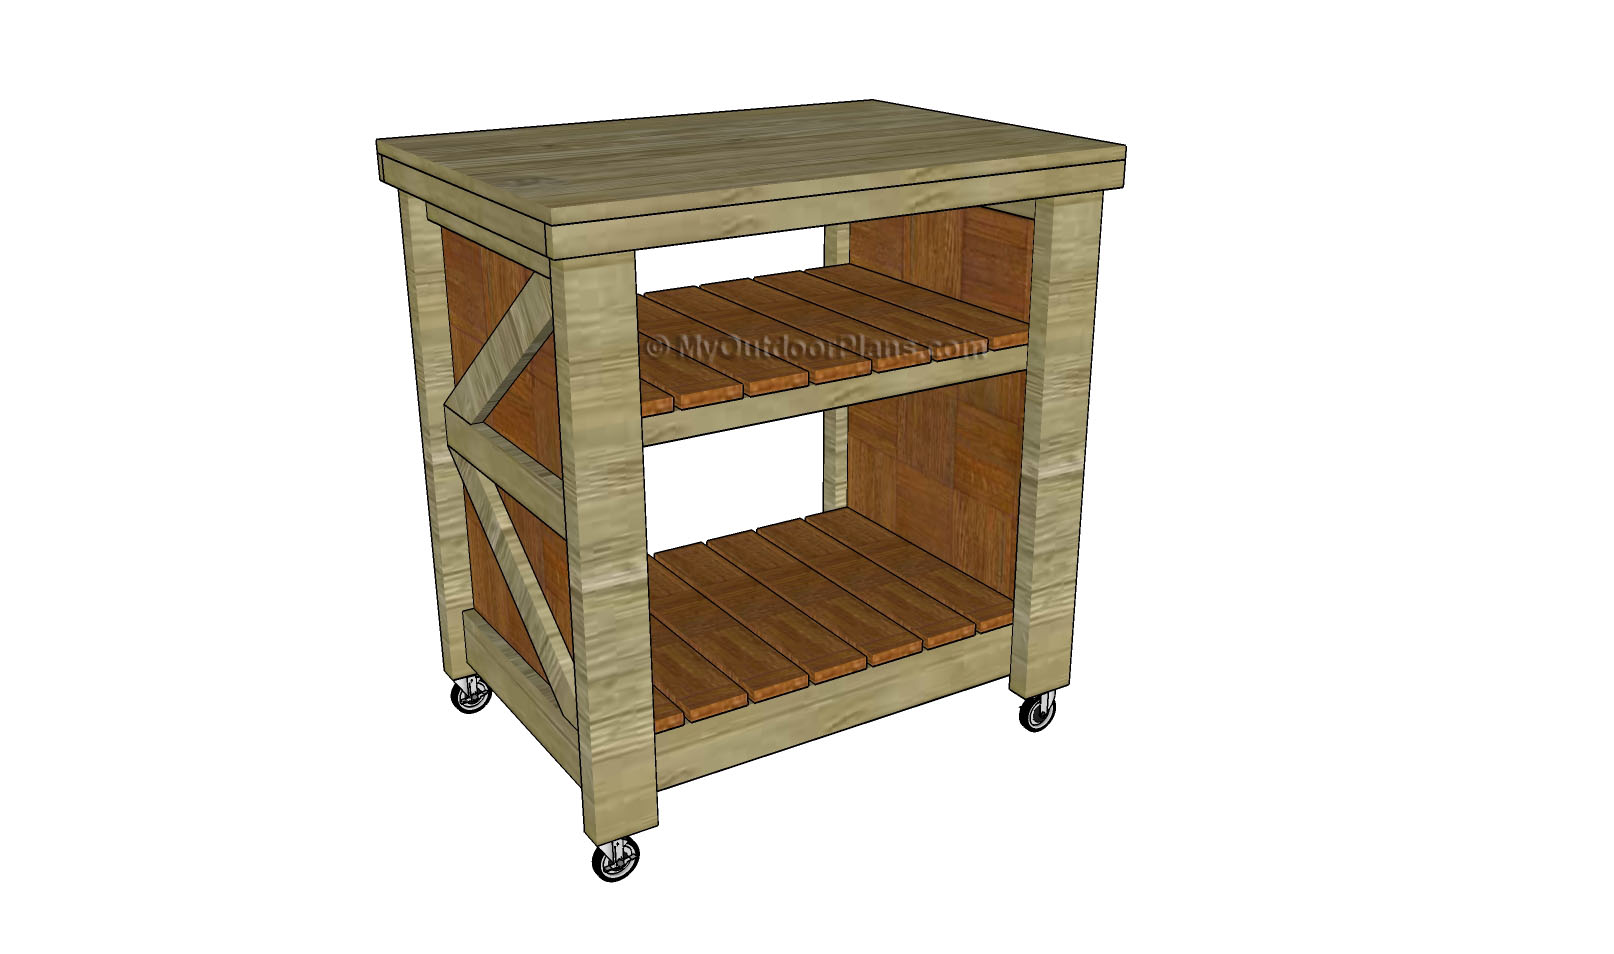 woodworking plans kitchen island small kitchen island plans free outdoor plans diy shed wooden playhouse bbq woodworking 1118